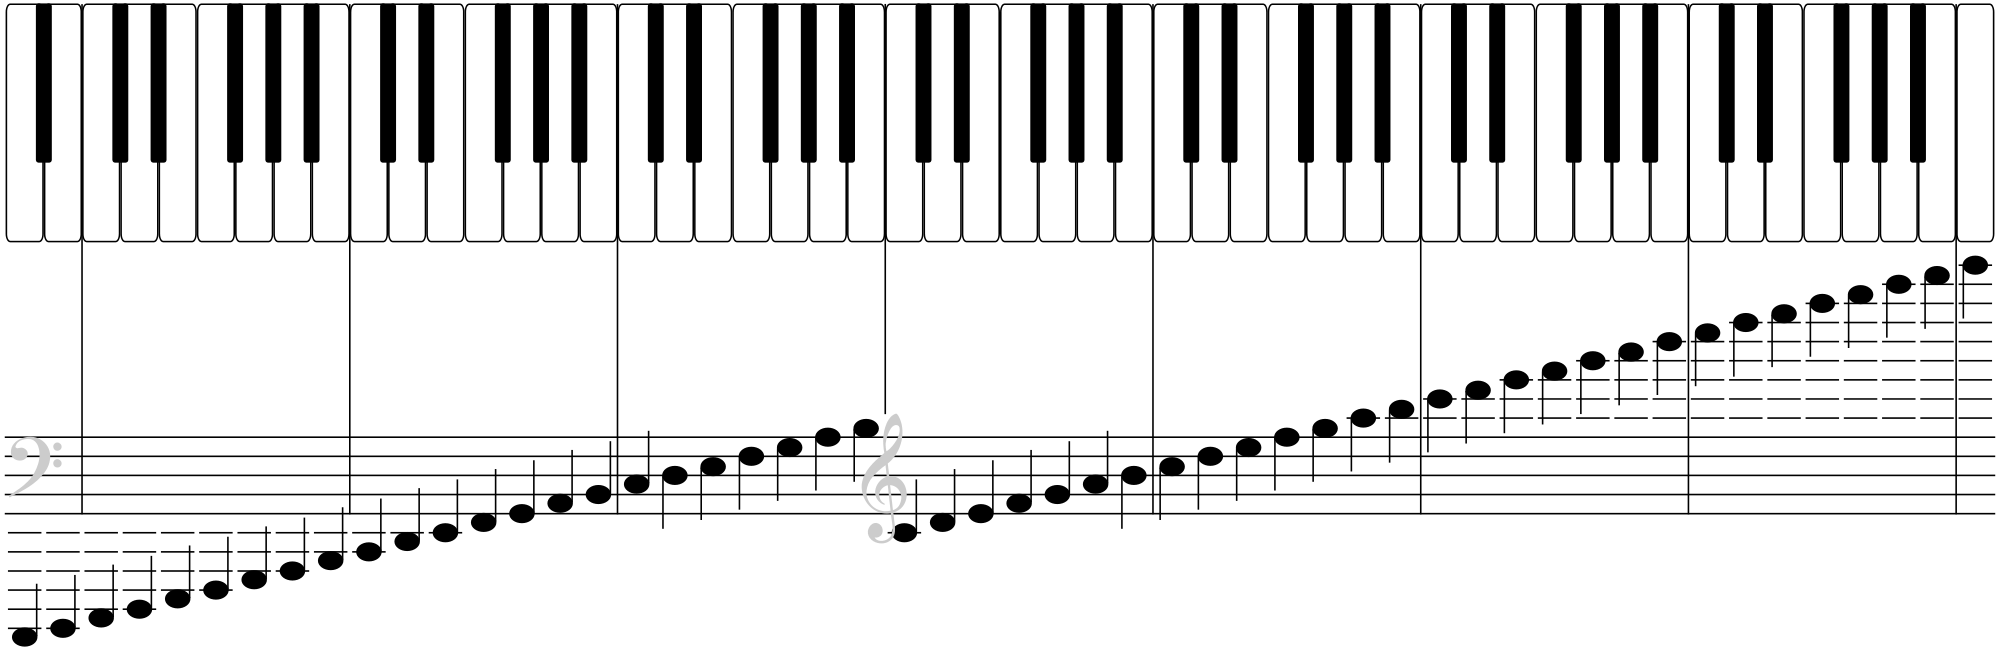 Piano svg keyboard. File pianos with notes